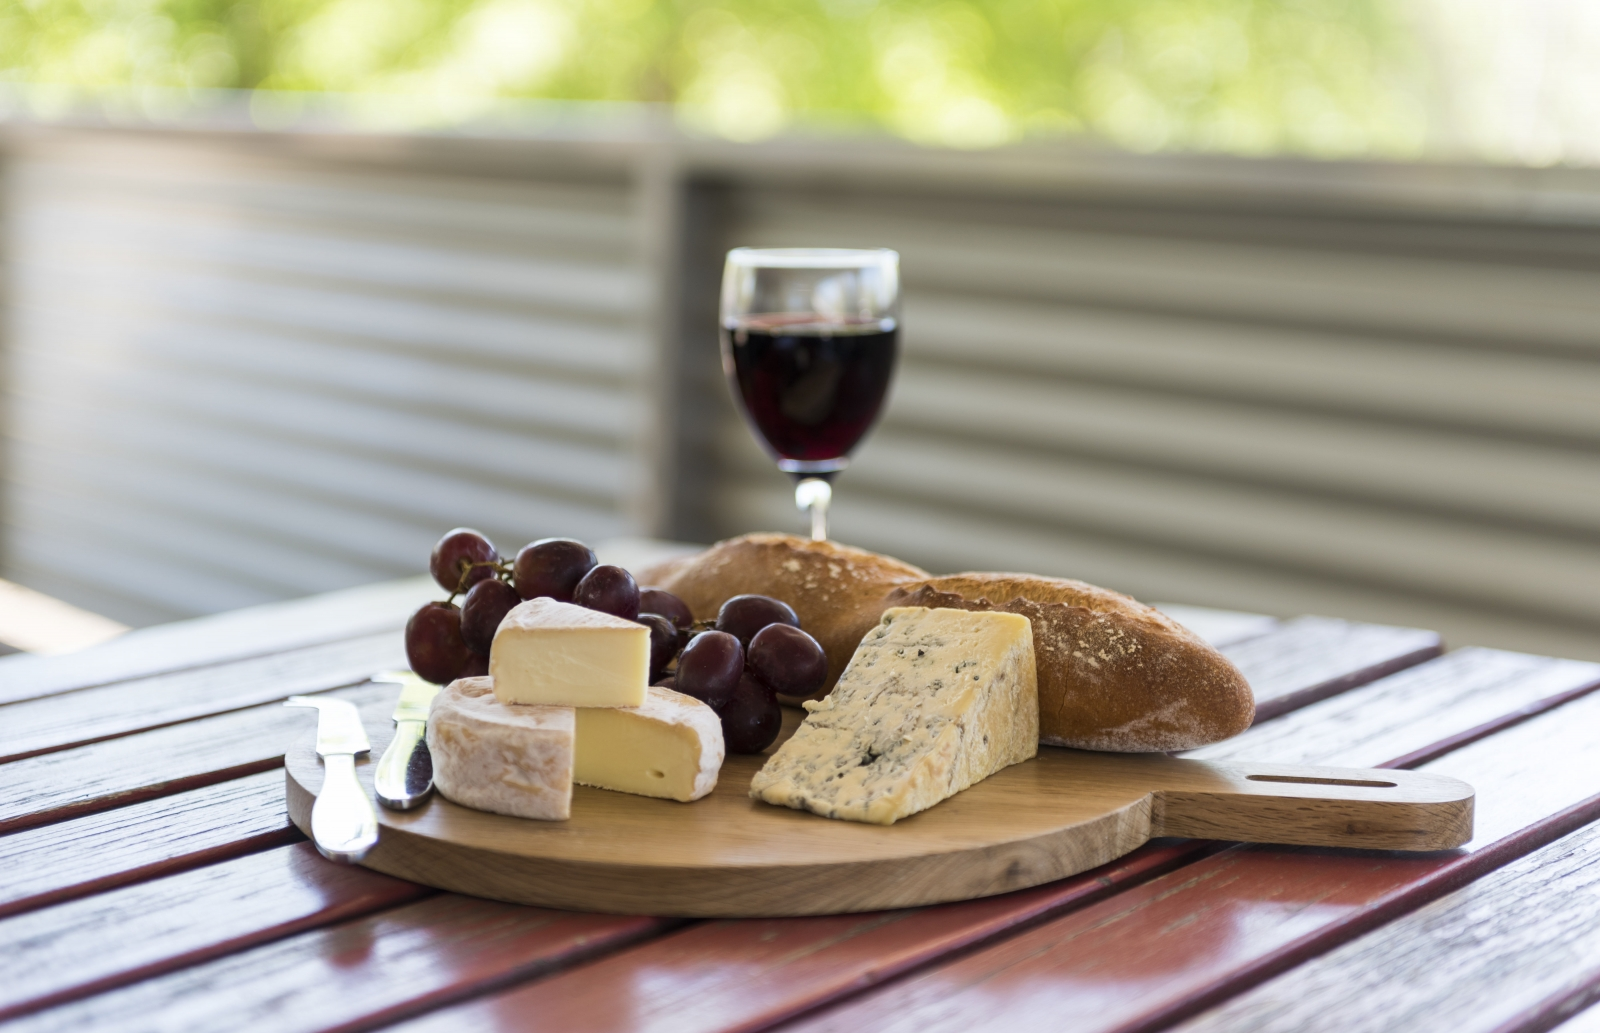 Classic food and drink pairings